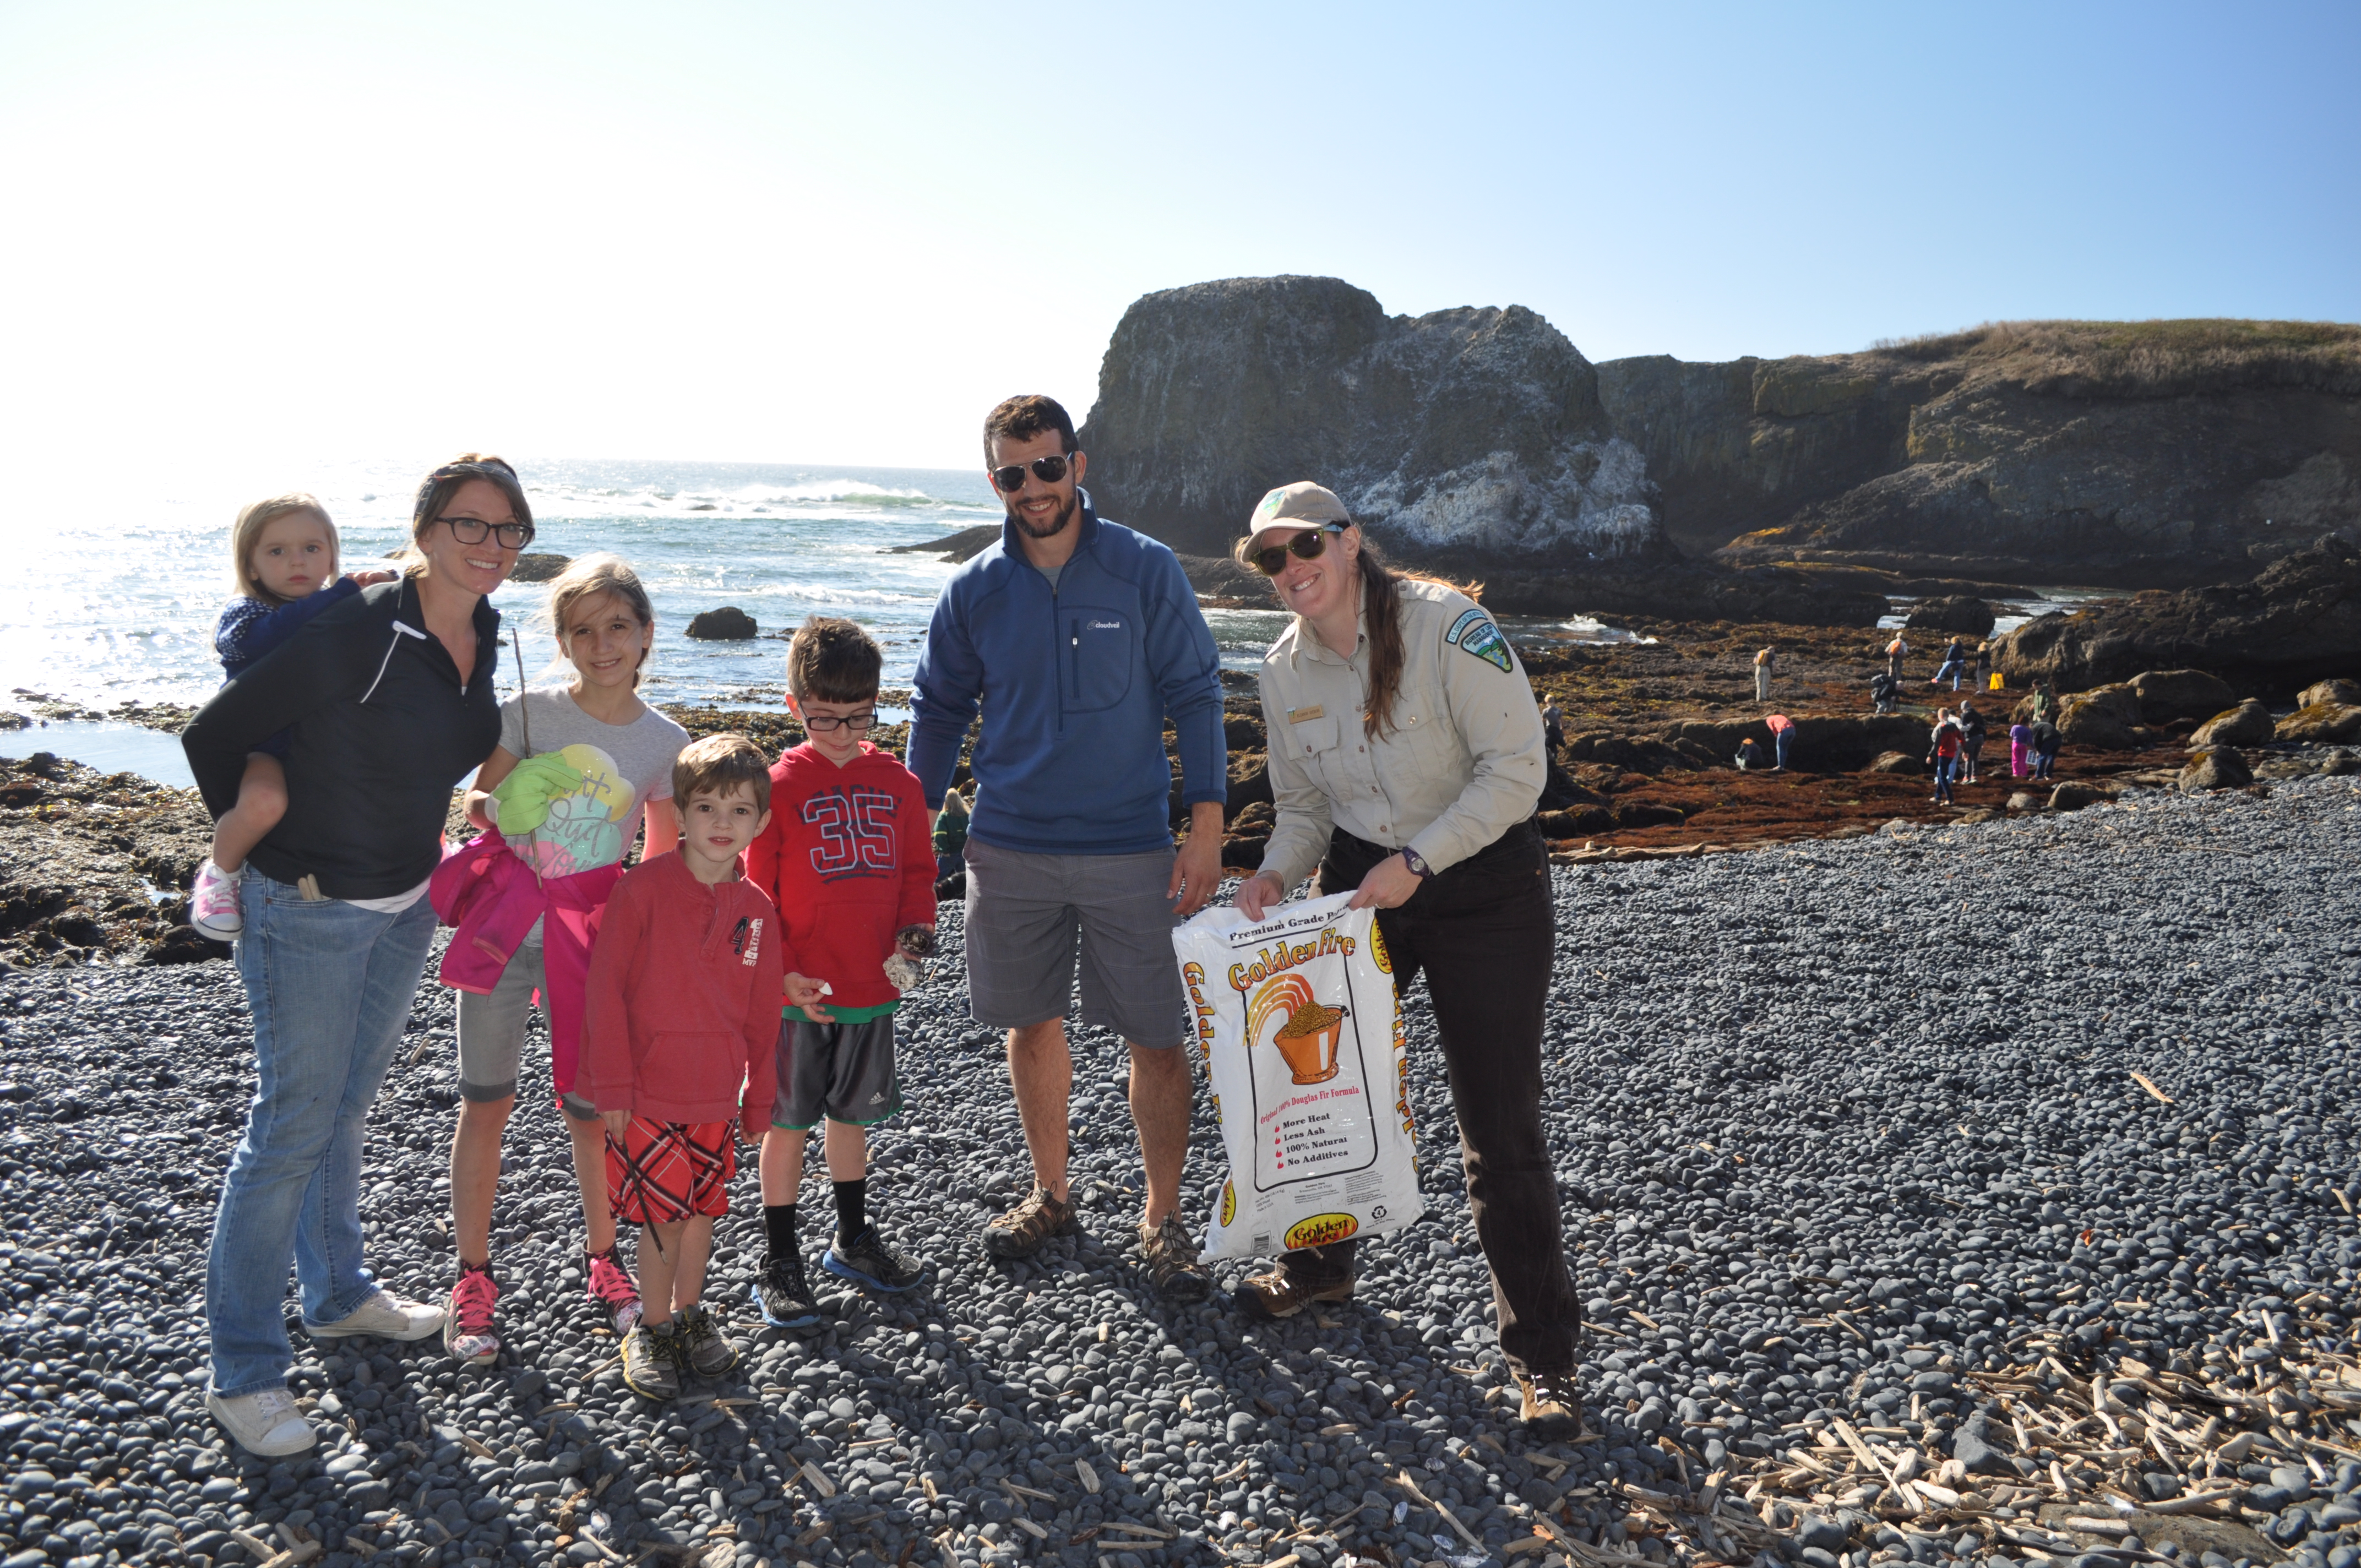 File:2015 National Public Lands Day at Yaquina Head